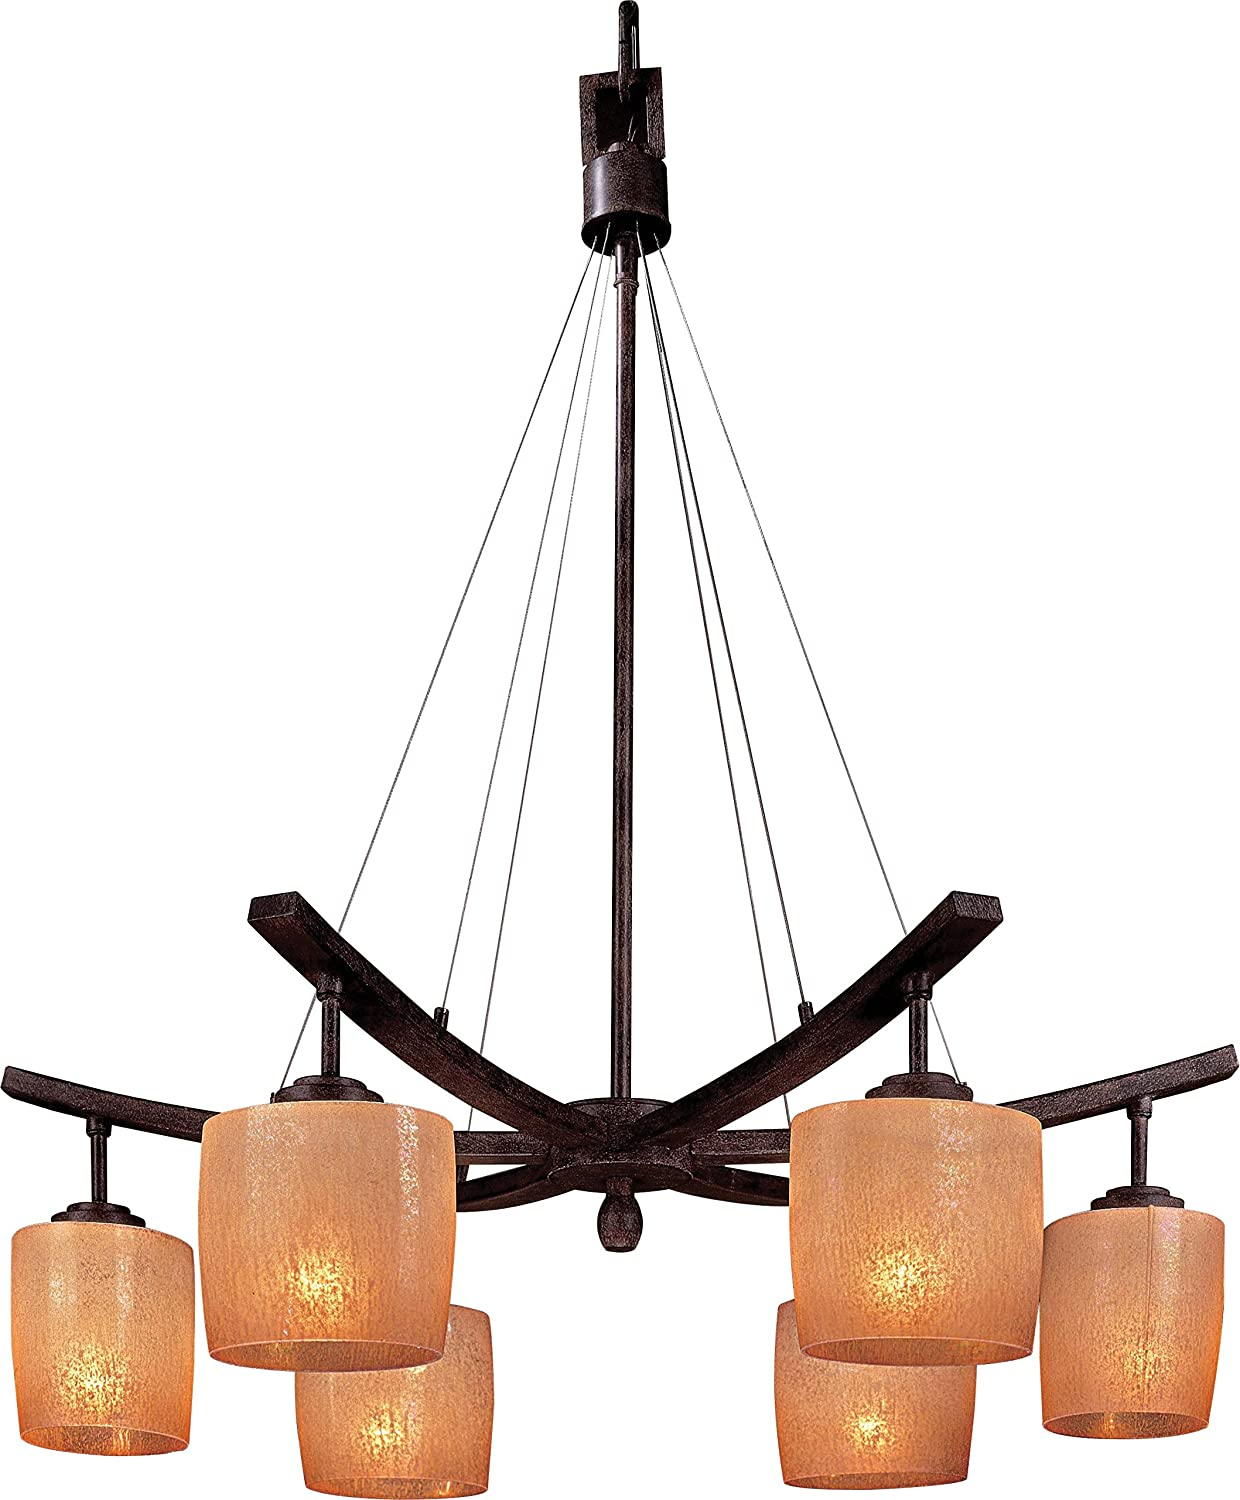 Minka Lavery Chandelier Pendant Lighting 1186-357, Raiden Glass 1 Tier Dining Room, 6 Light, 600 Watts, Iron